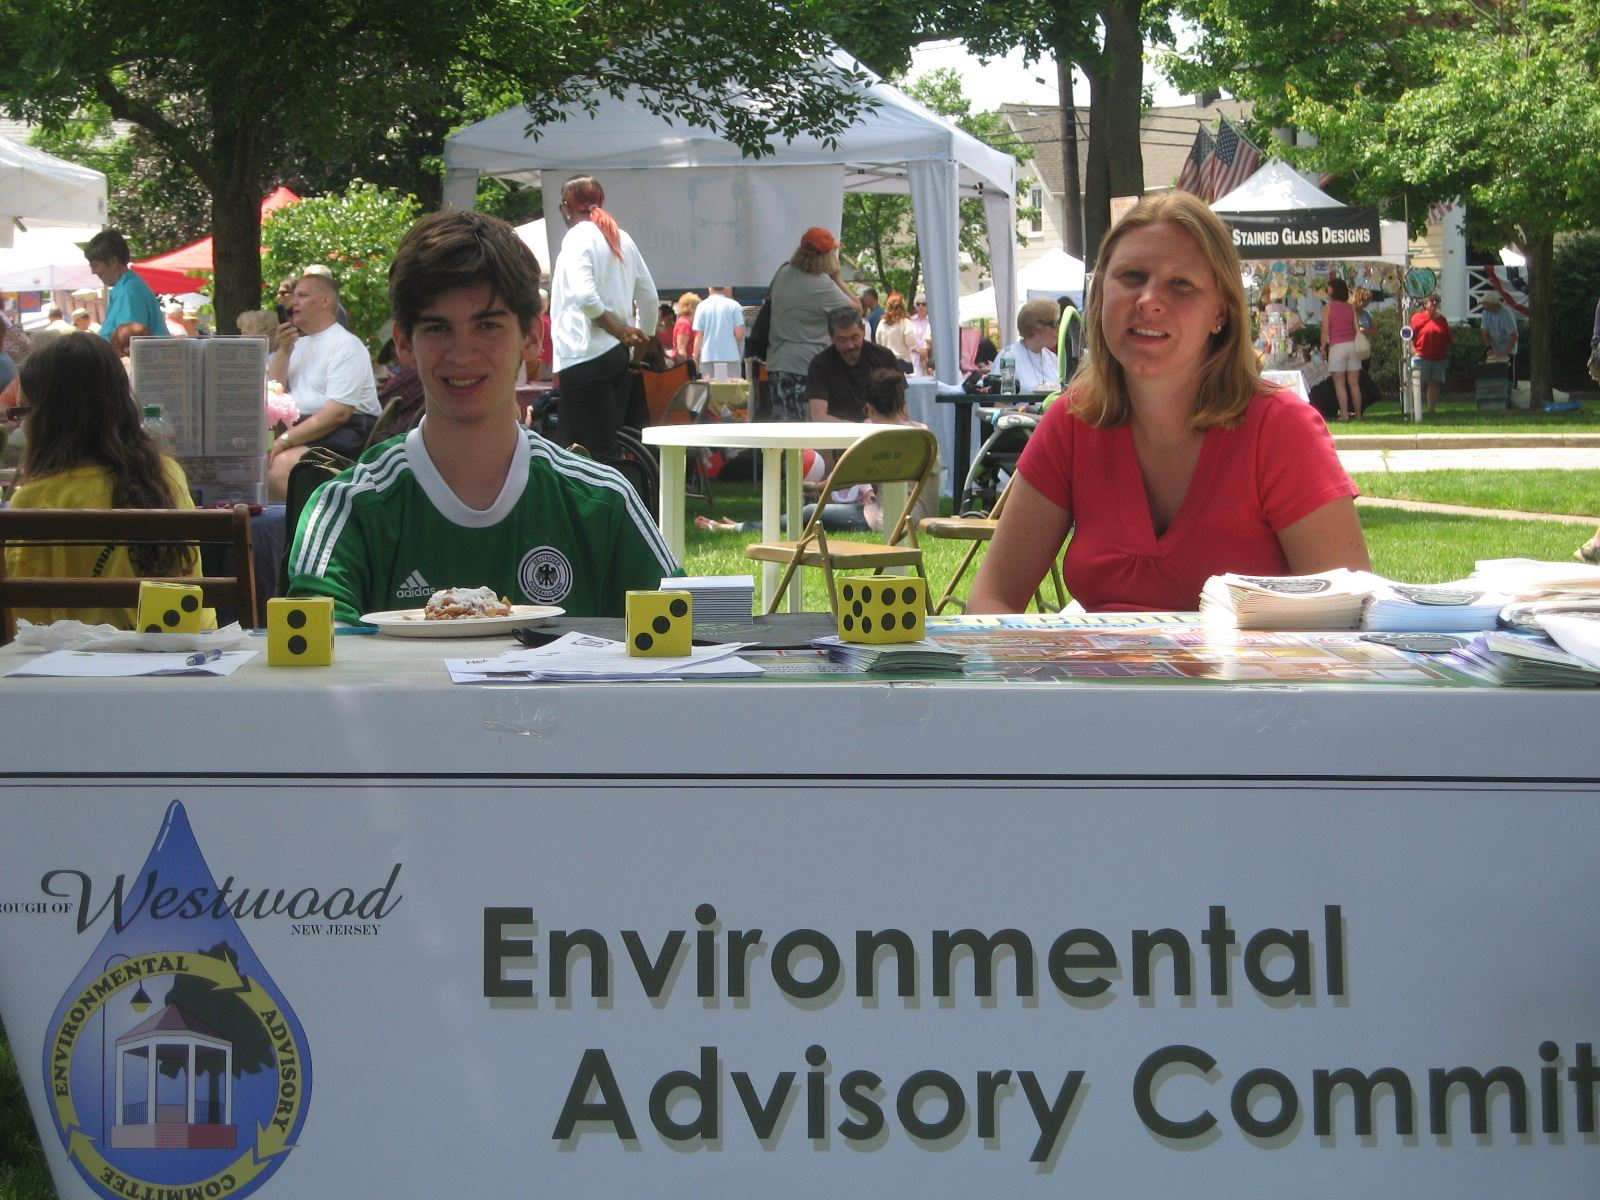 Members of the Environmental Advisory Committee at Westwood Pride Day